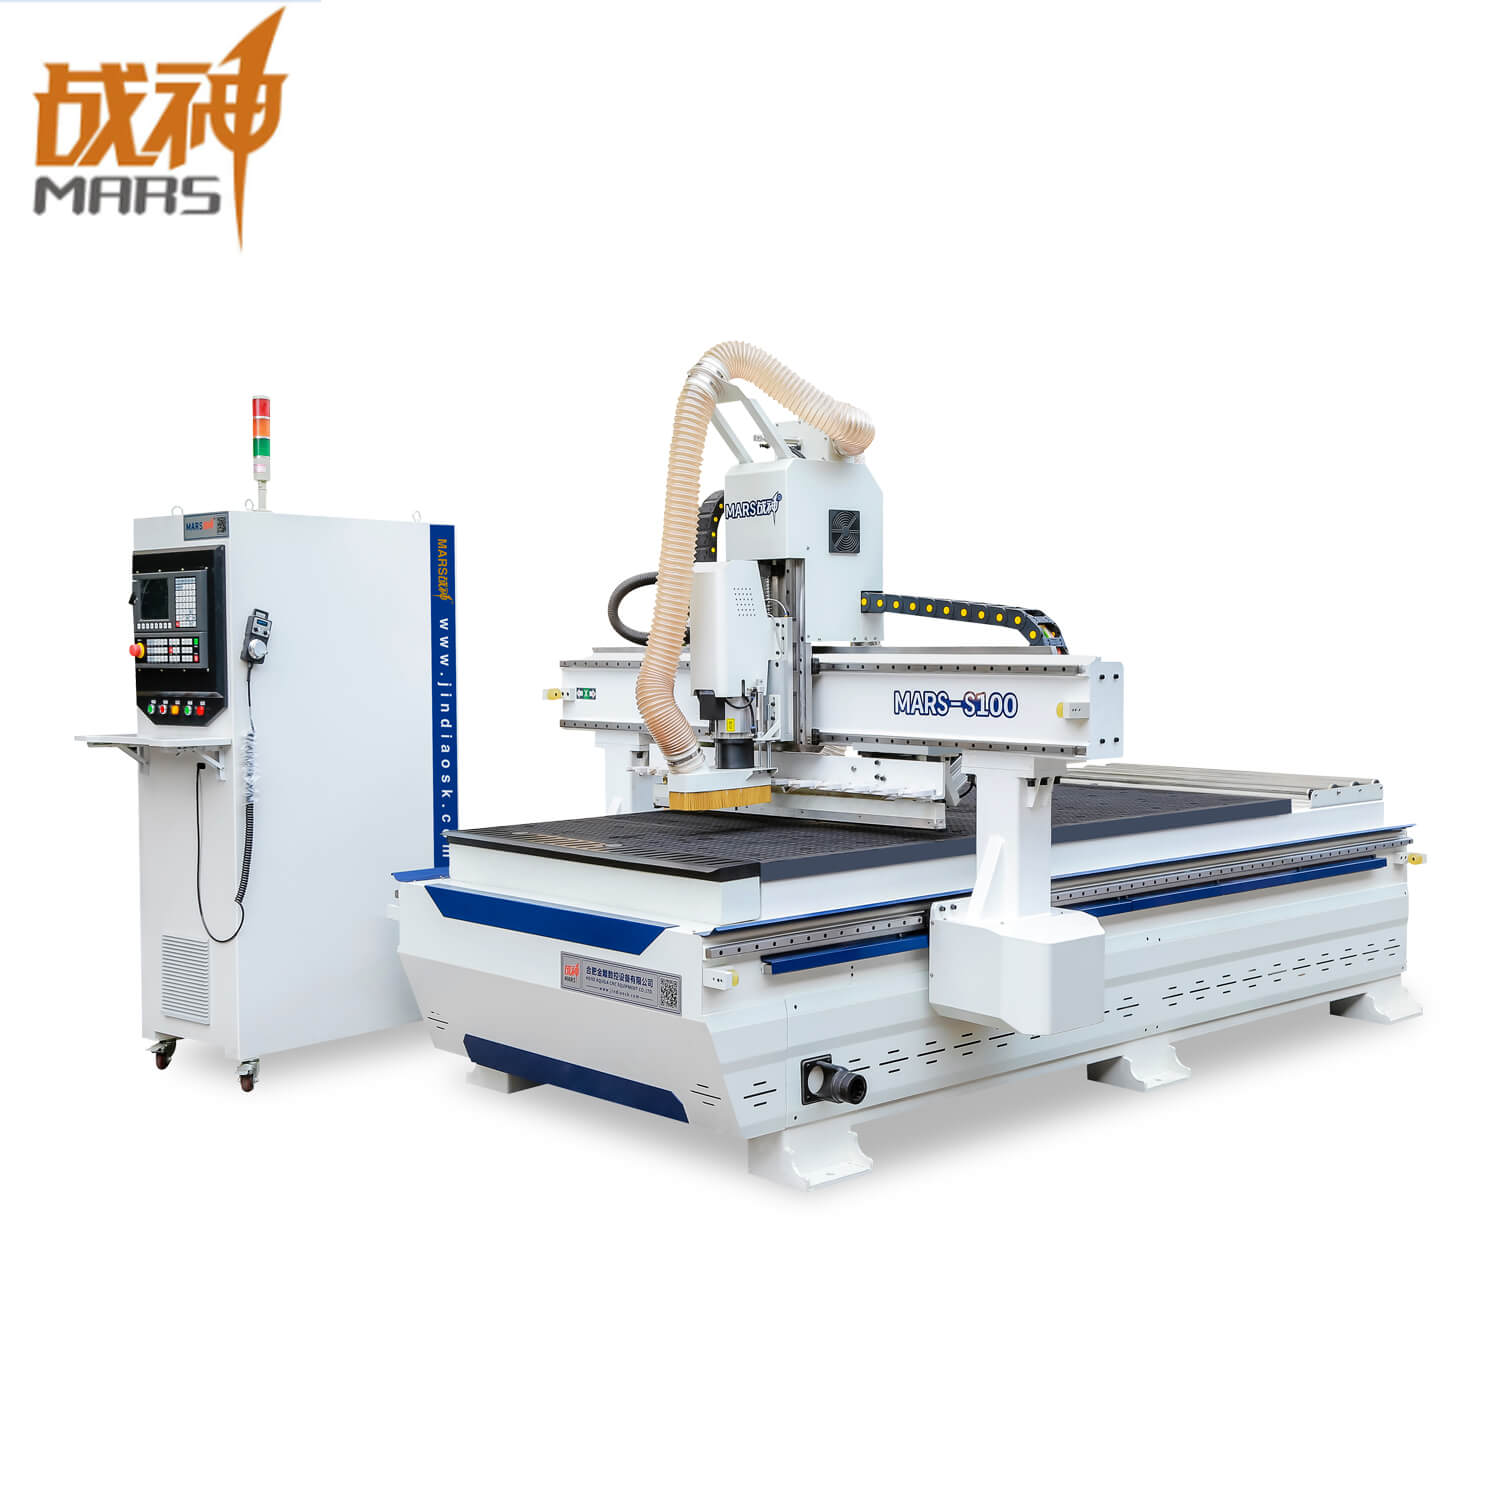 S100 High Quality CNC Router with Auto Lubrication System Used for Materials Cutting And Engraving